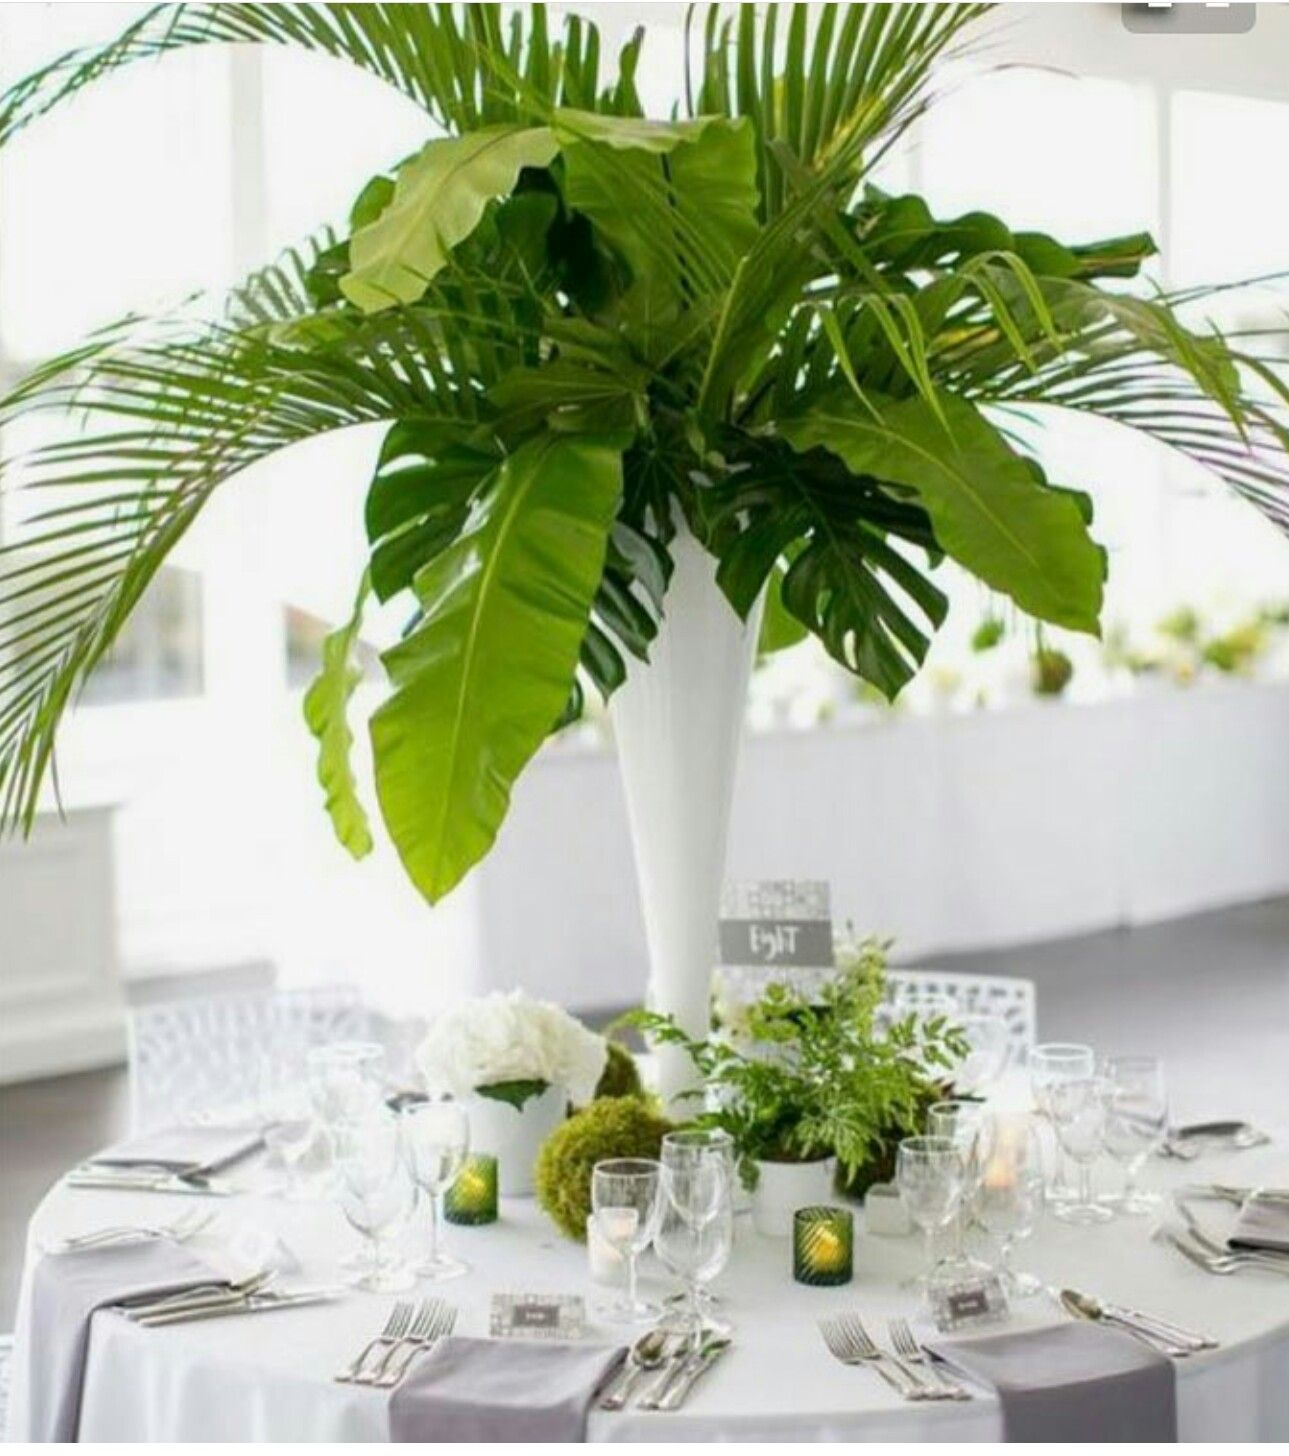 Green White Grey Gray Plants Centerpiece Table Setting